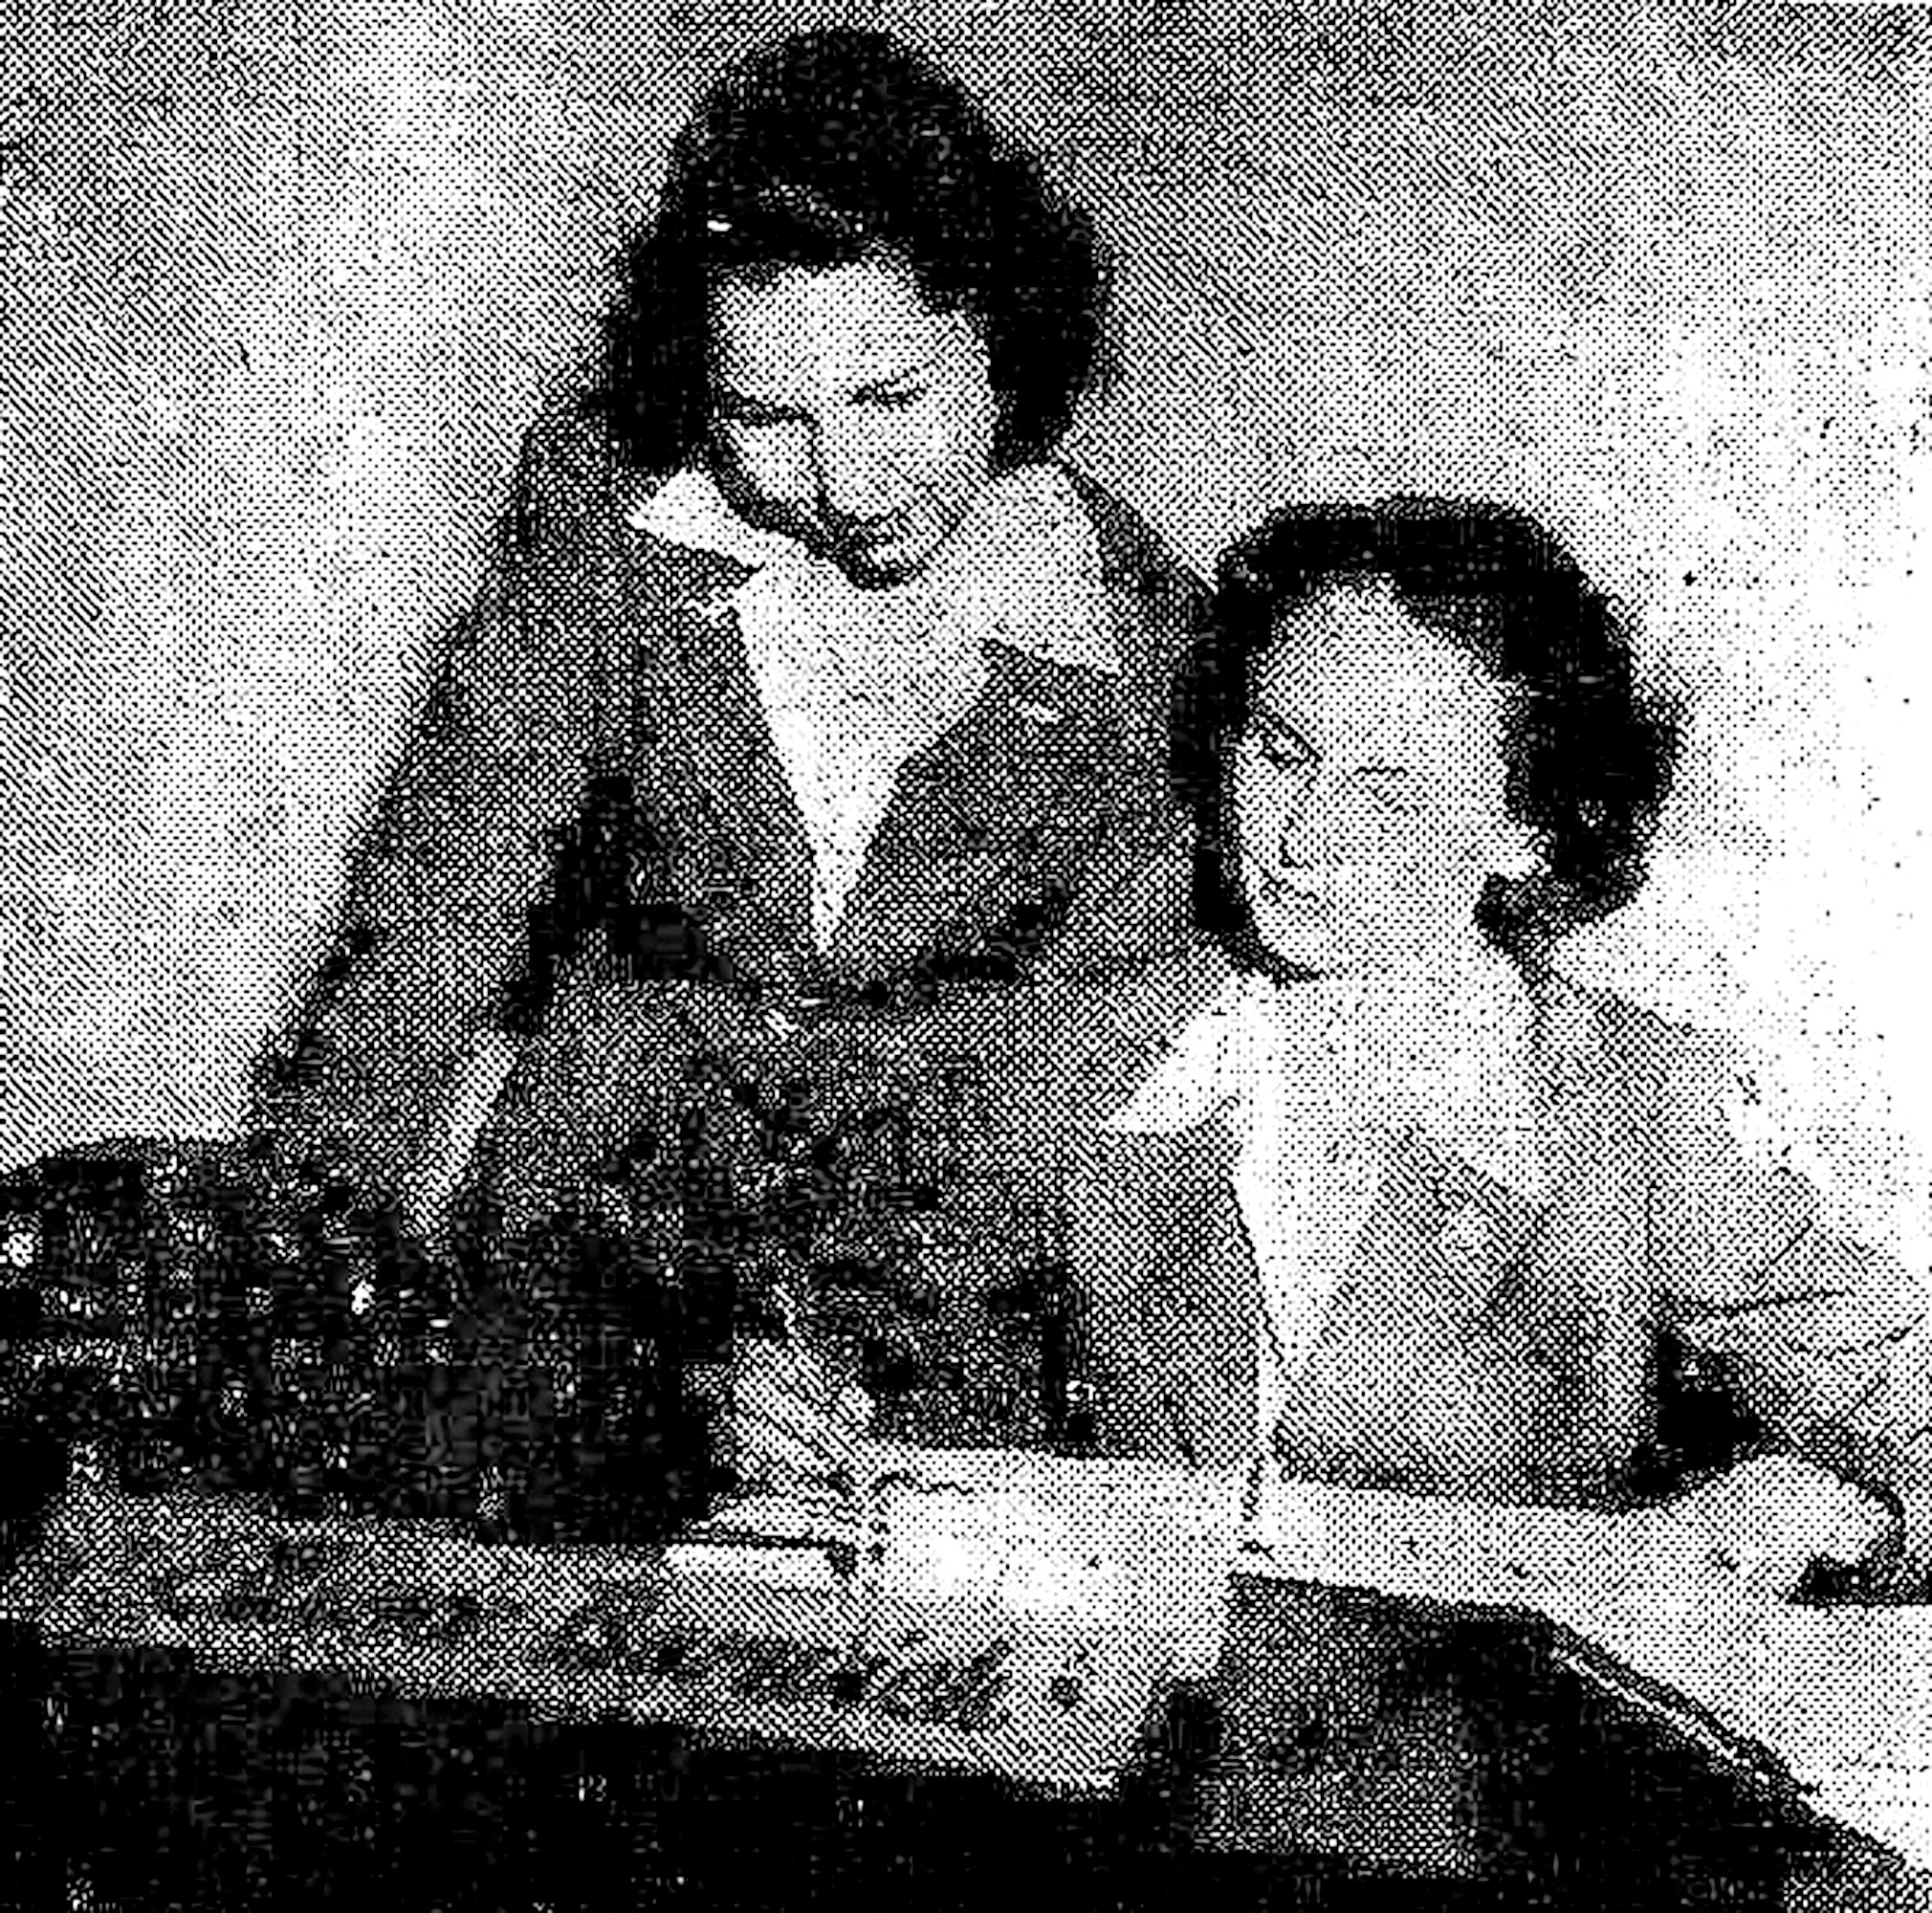 Ellinor Barwick, civilian personnel clerk, and Elizabeth Spears, special orders cler, were the first civilians employed at Shaw Field.